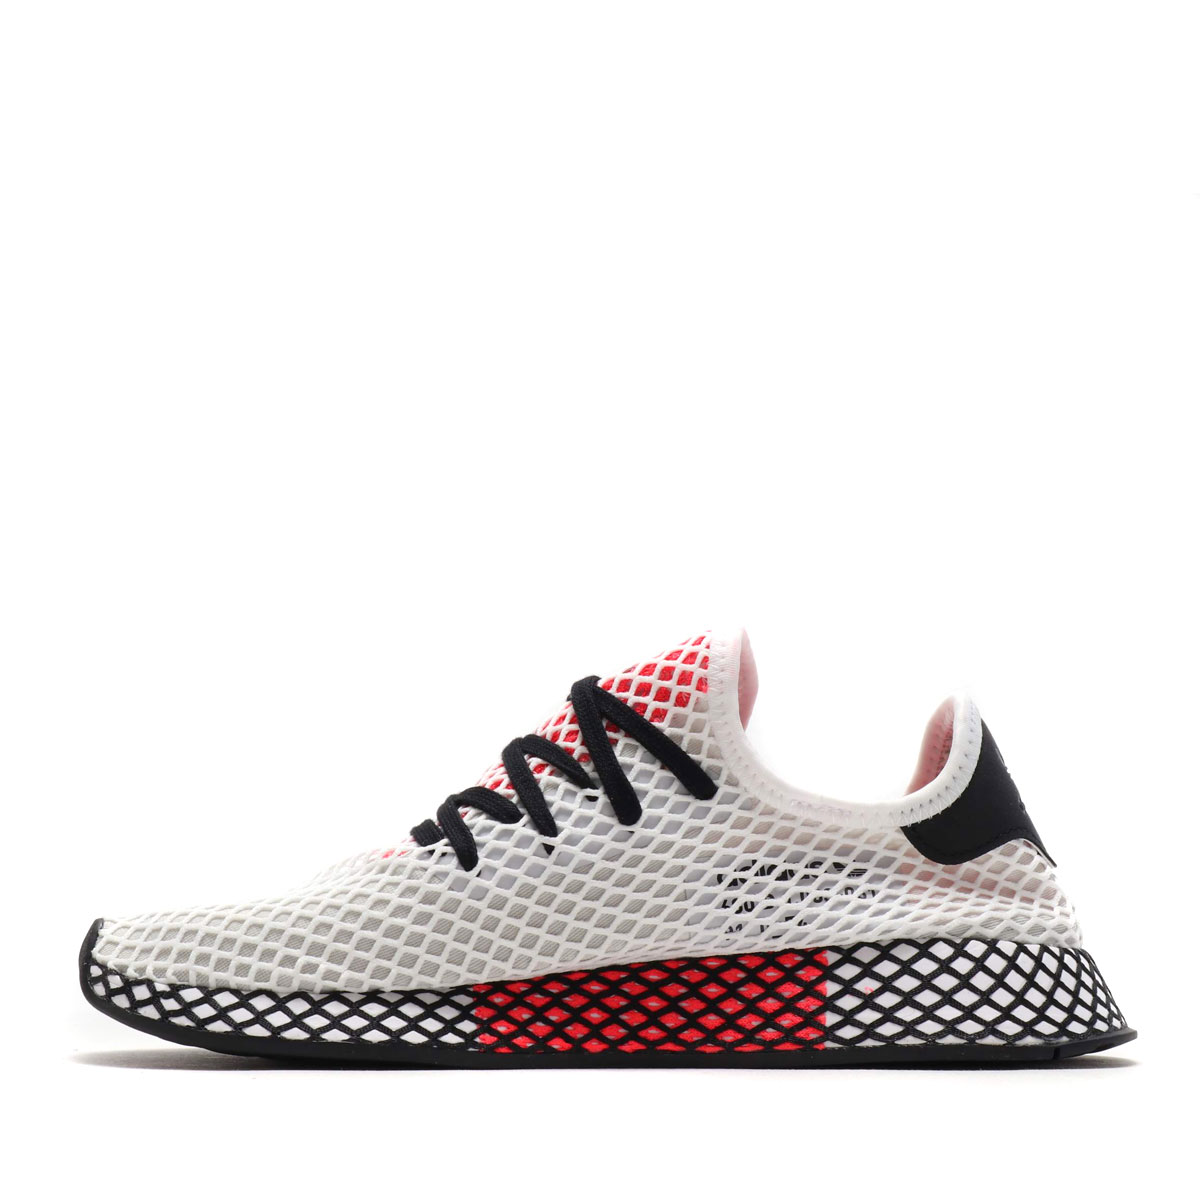 uk availability 1cb9c 575ad adidas Originals DEERUPT RUNNER (RUNNING WHITECORE BLACKSHOCK RED)  (アディダスオリジナルスディーラプトランナー)